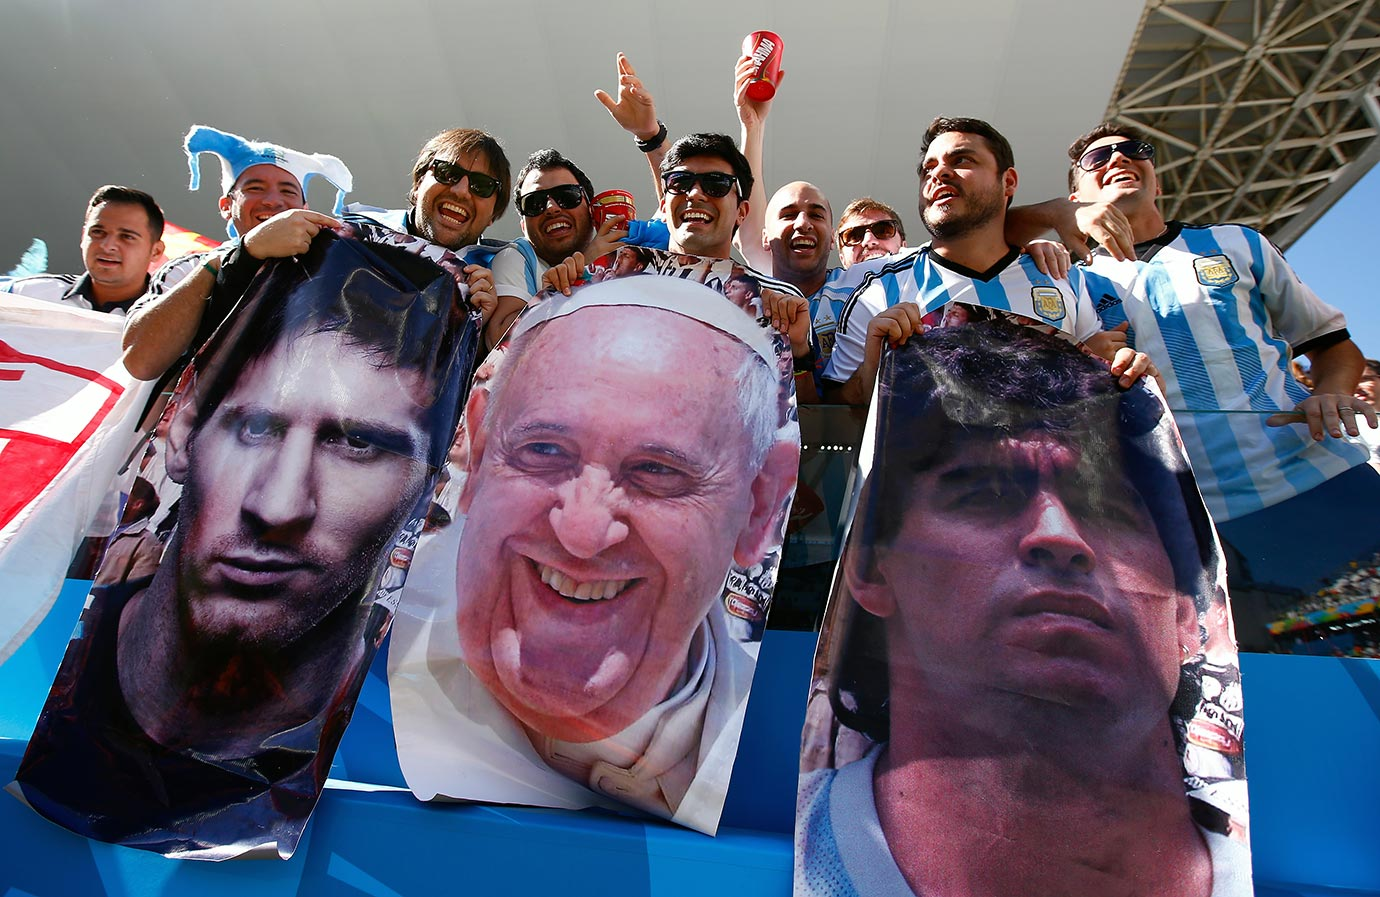 Argentina fans hold posters of Lionel Messi, Pope Francis and Diego Maradona prior to the 2014 FIFA World Cup Brazil Round of 16 match between Argentina and Switzerland at Arena de Sao Paulo on July 1, 2014 in Sao Paulo, Brazil.